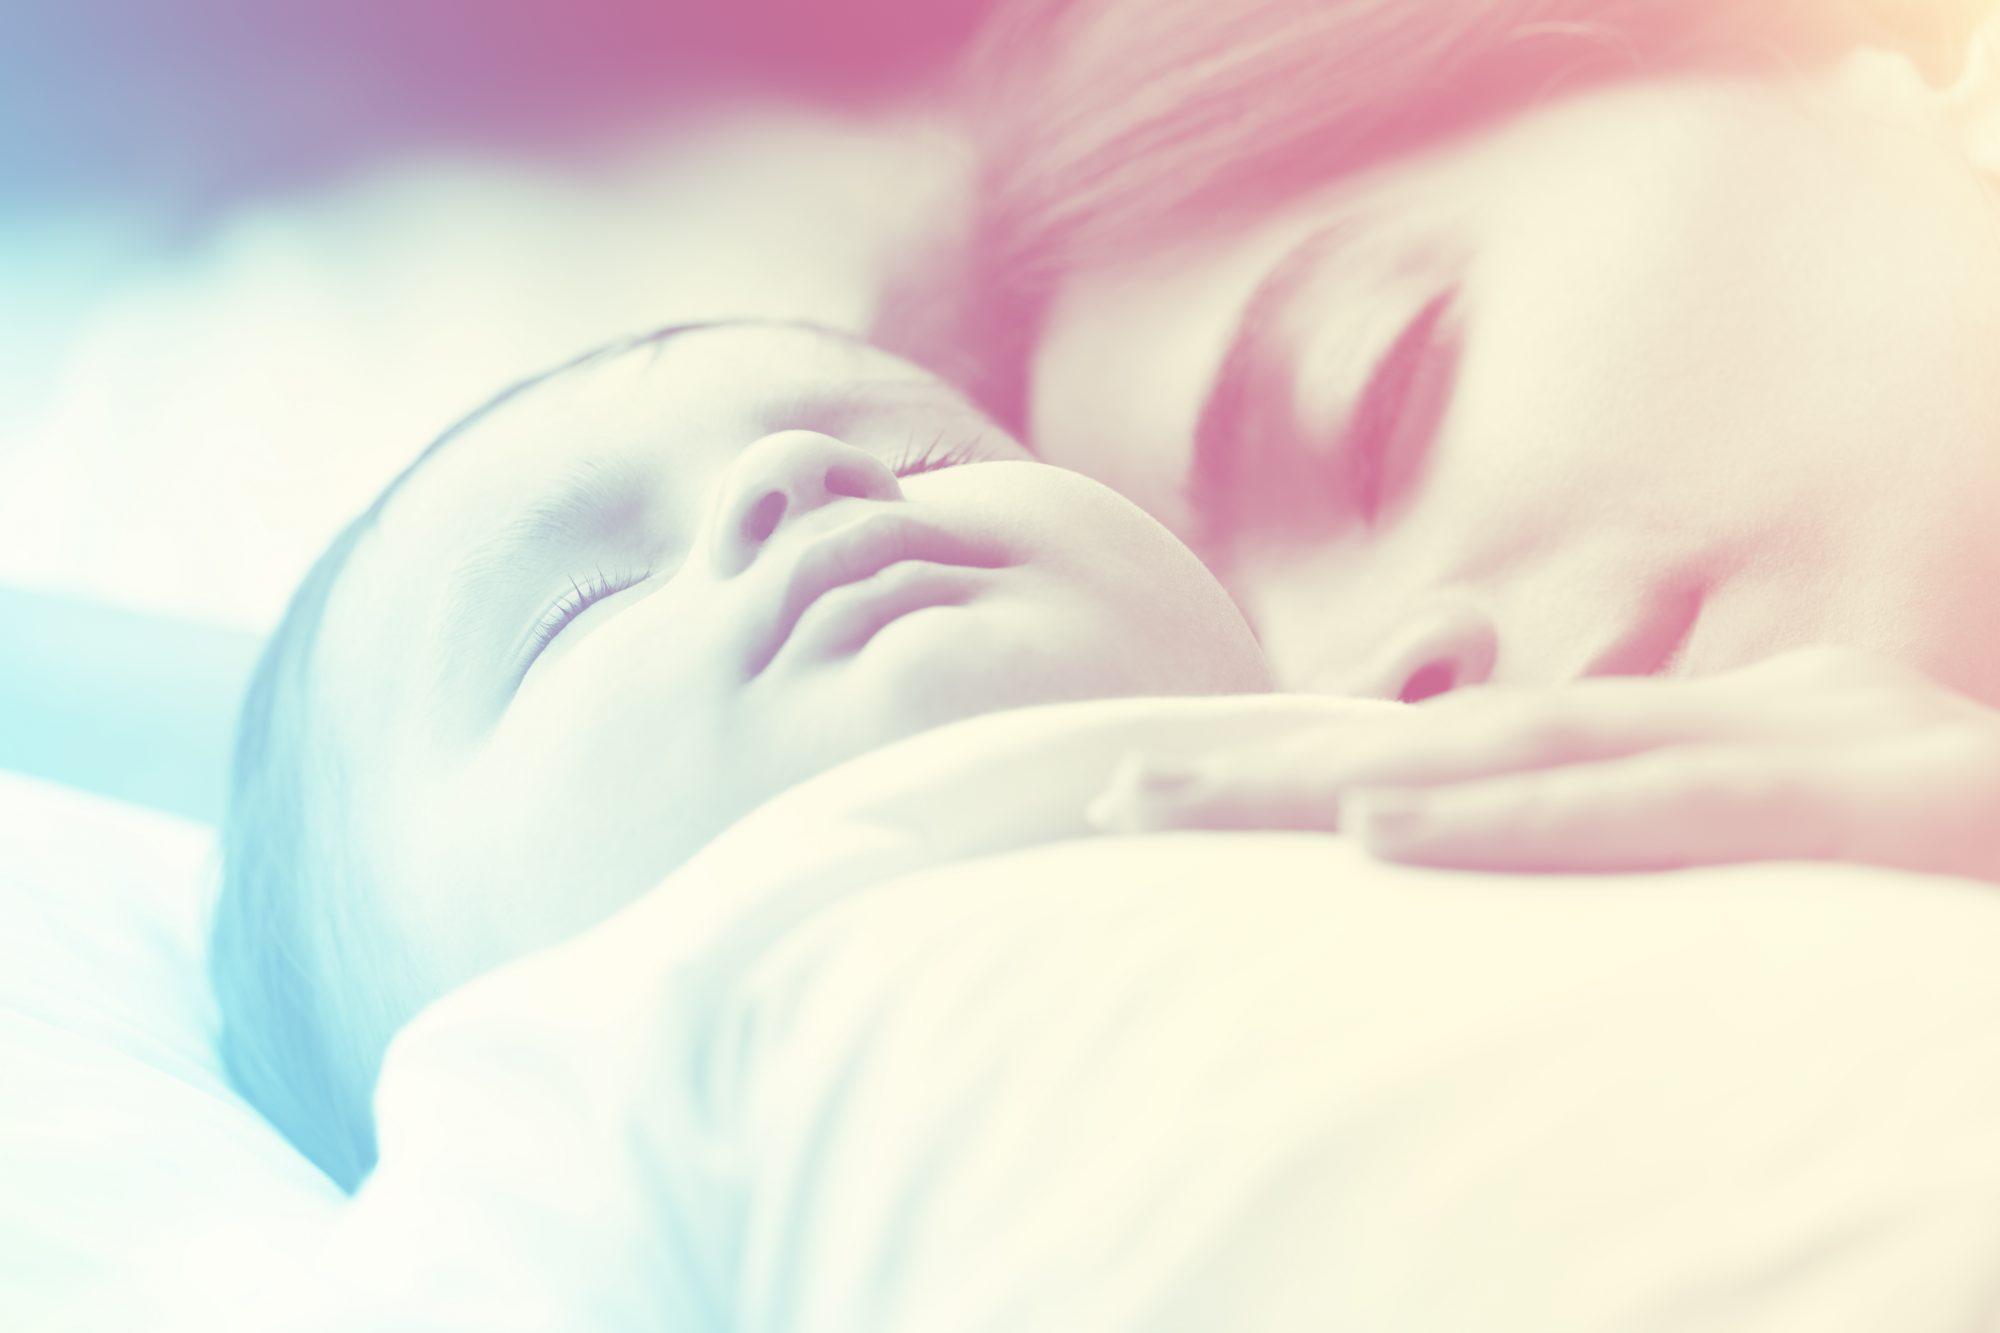 After 3 Babies Died, Police Are Warning Parents About the Dangers of Co-Sleeping